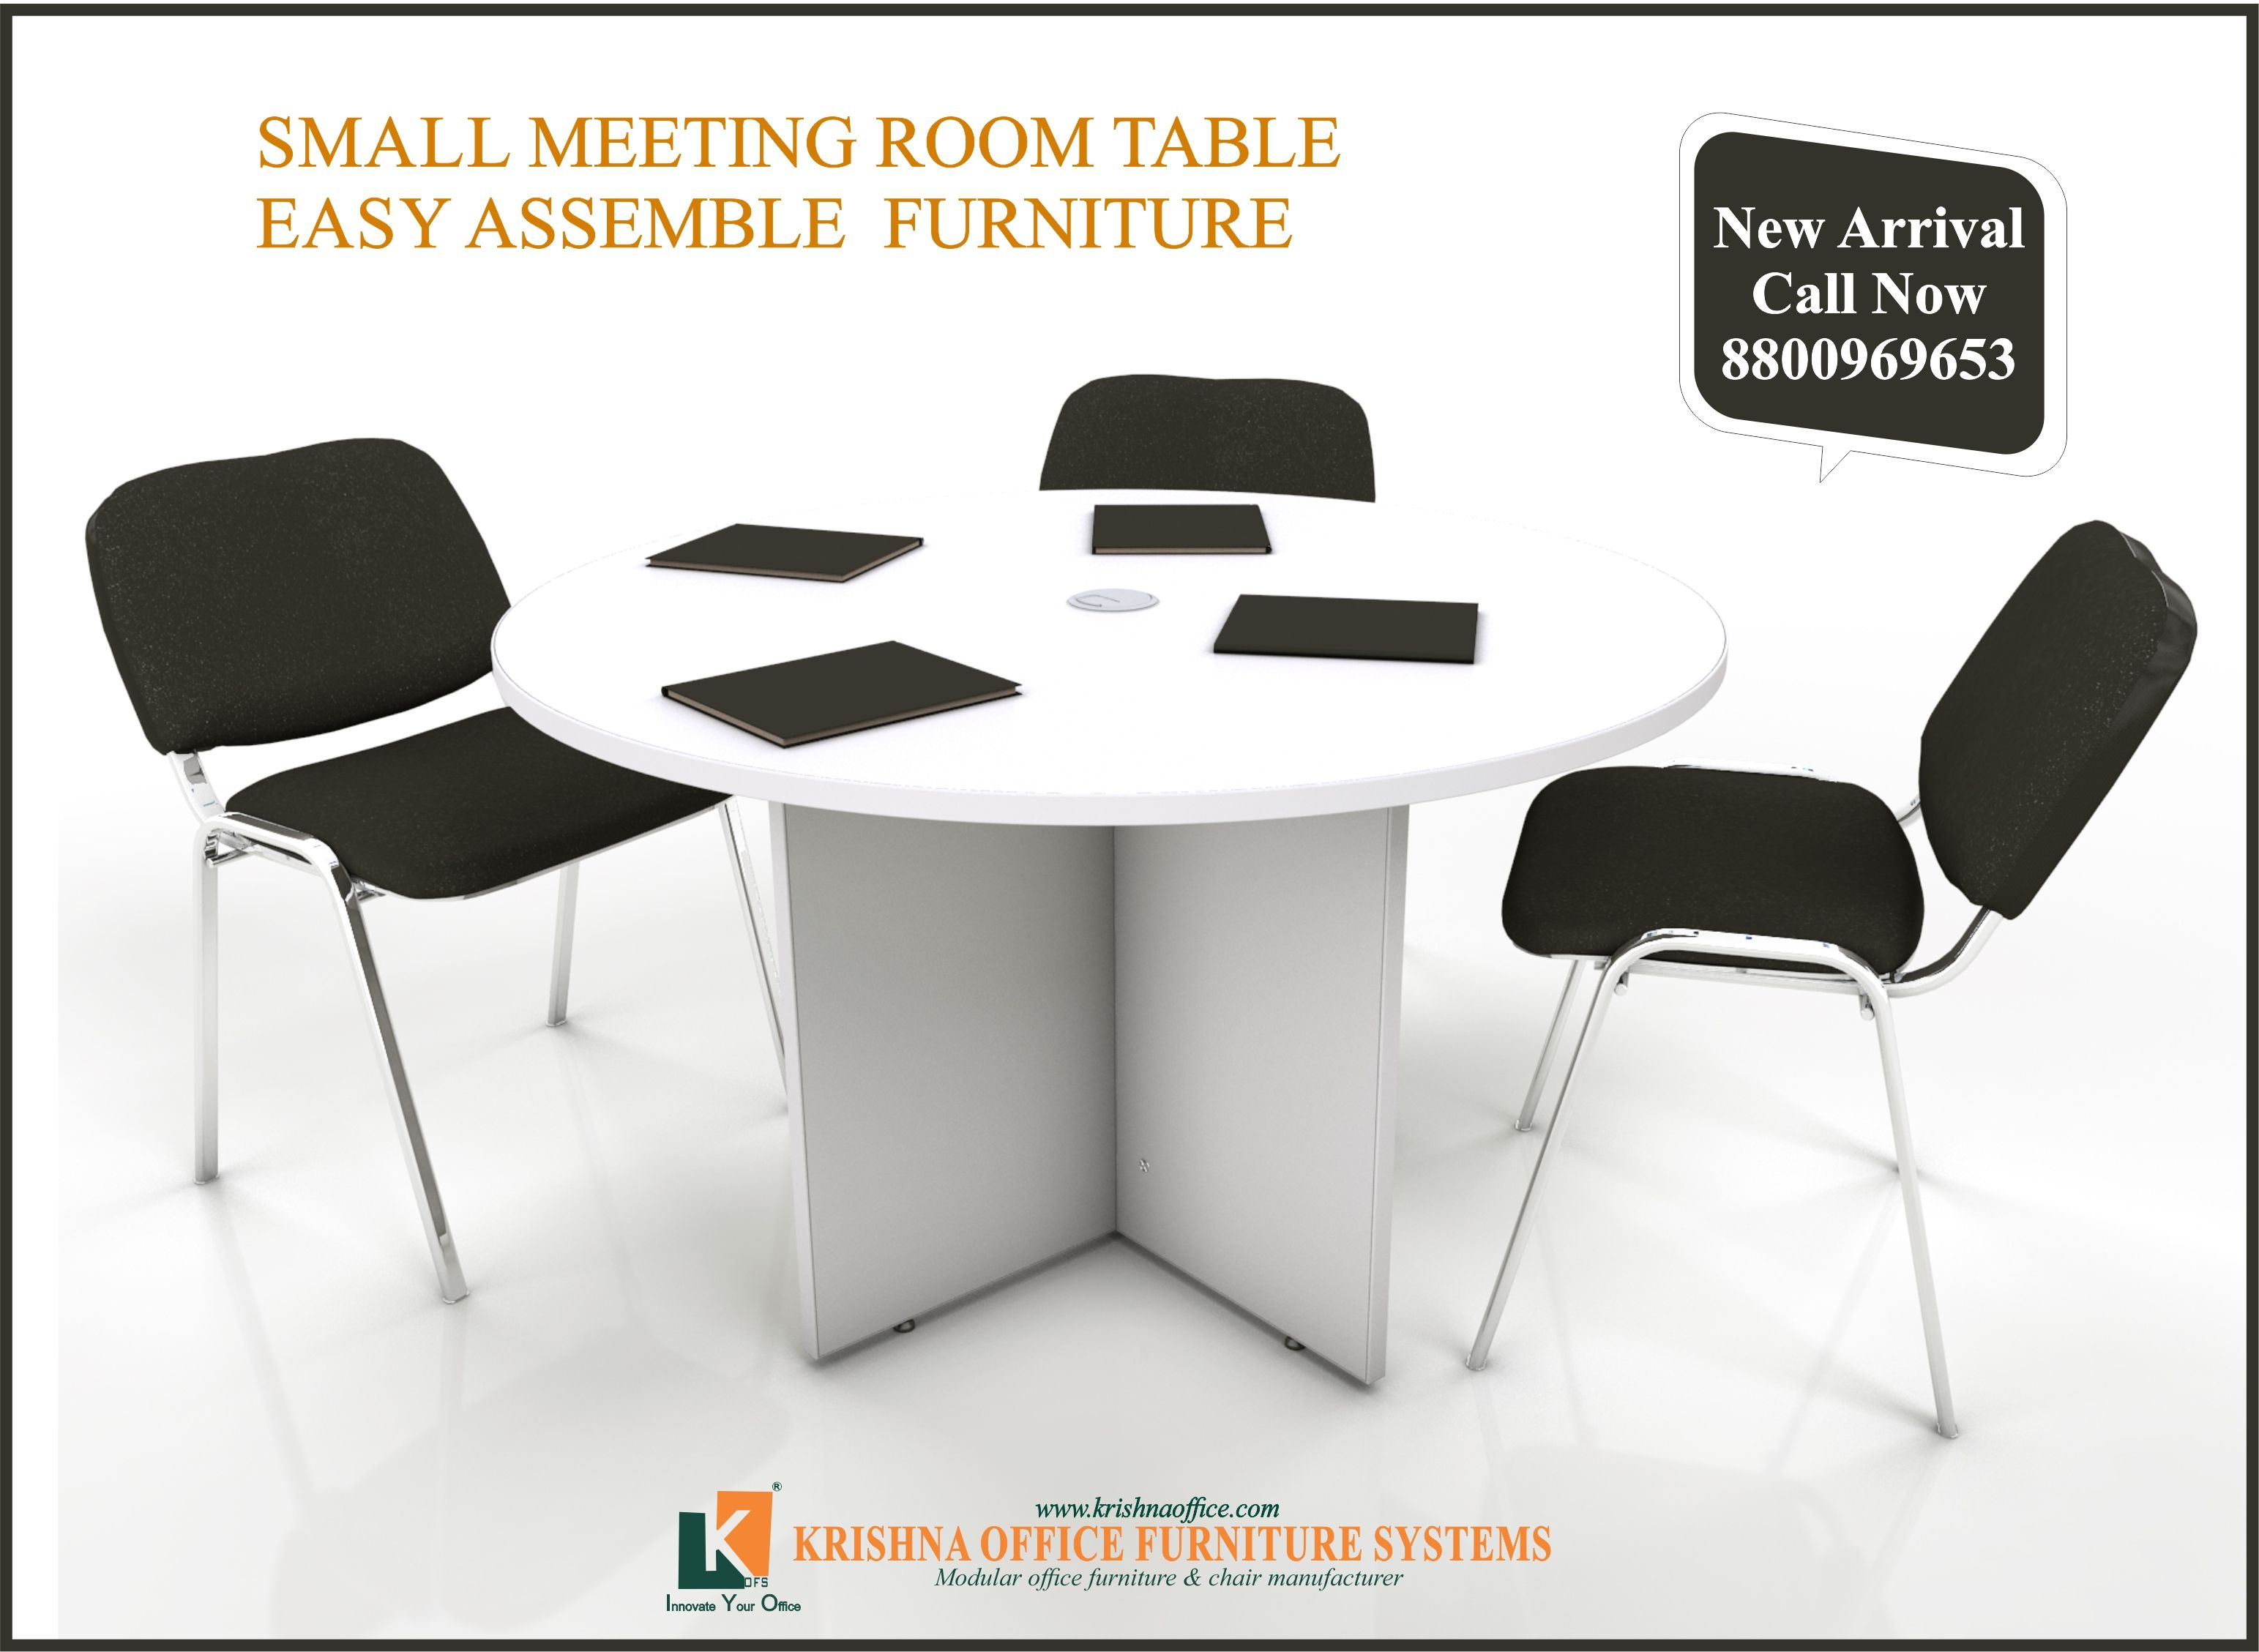 Small Meeting Table Kofs Is